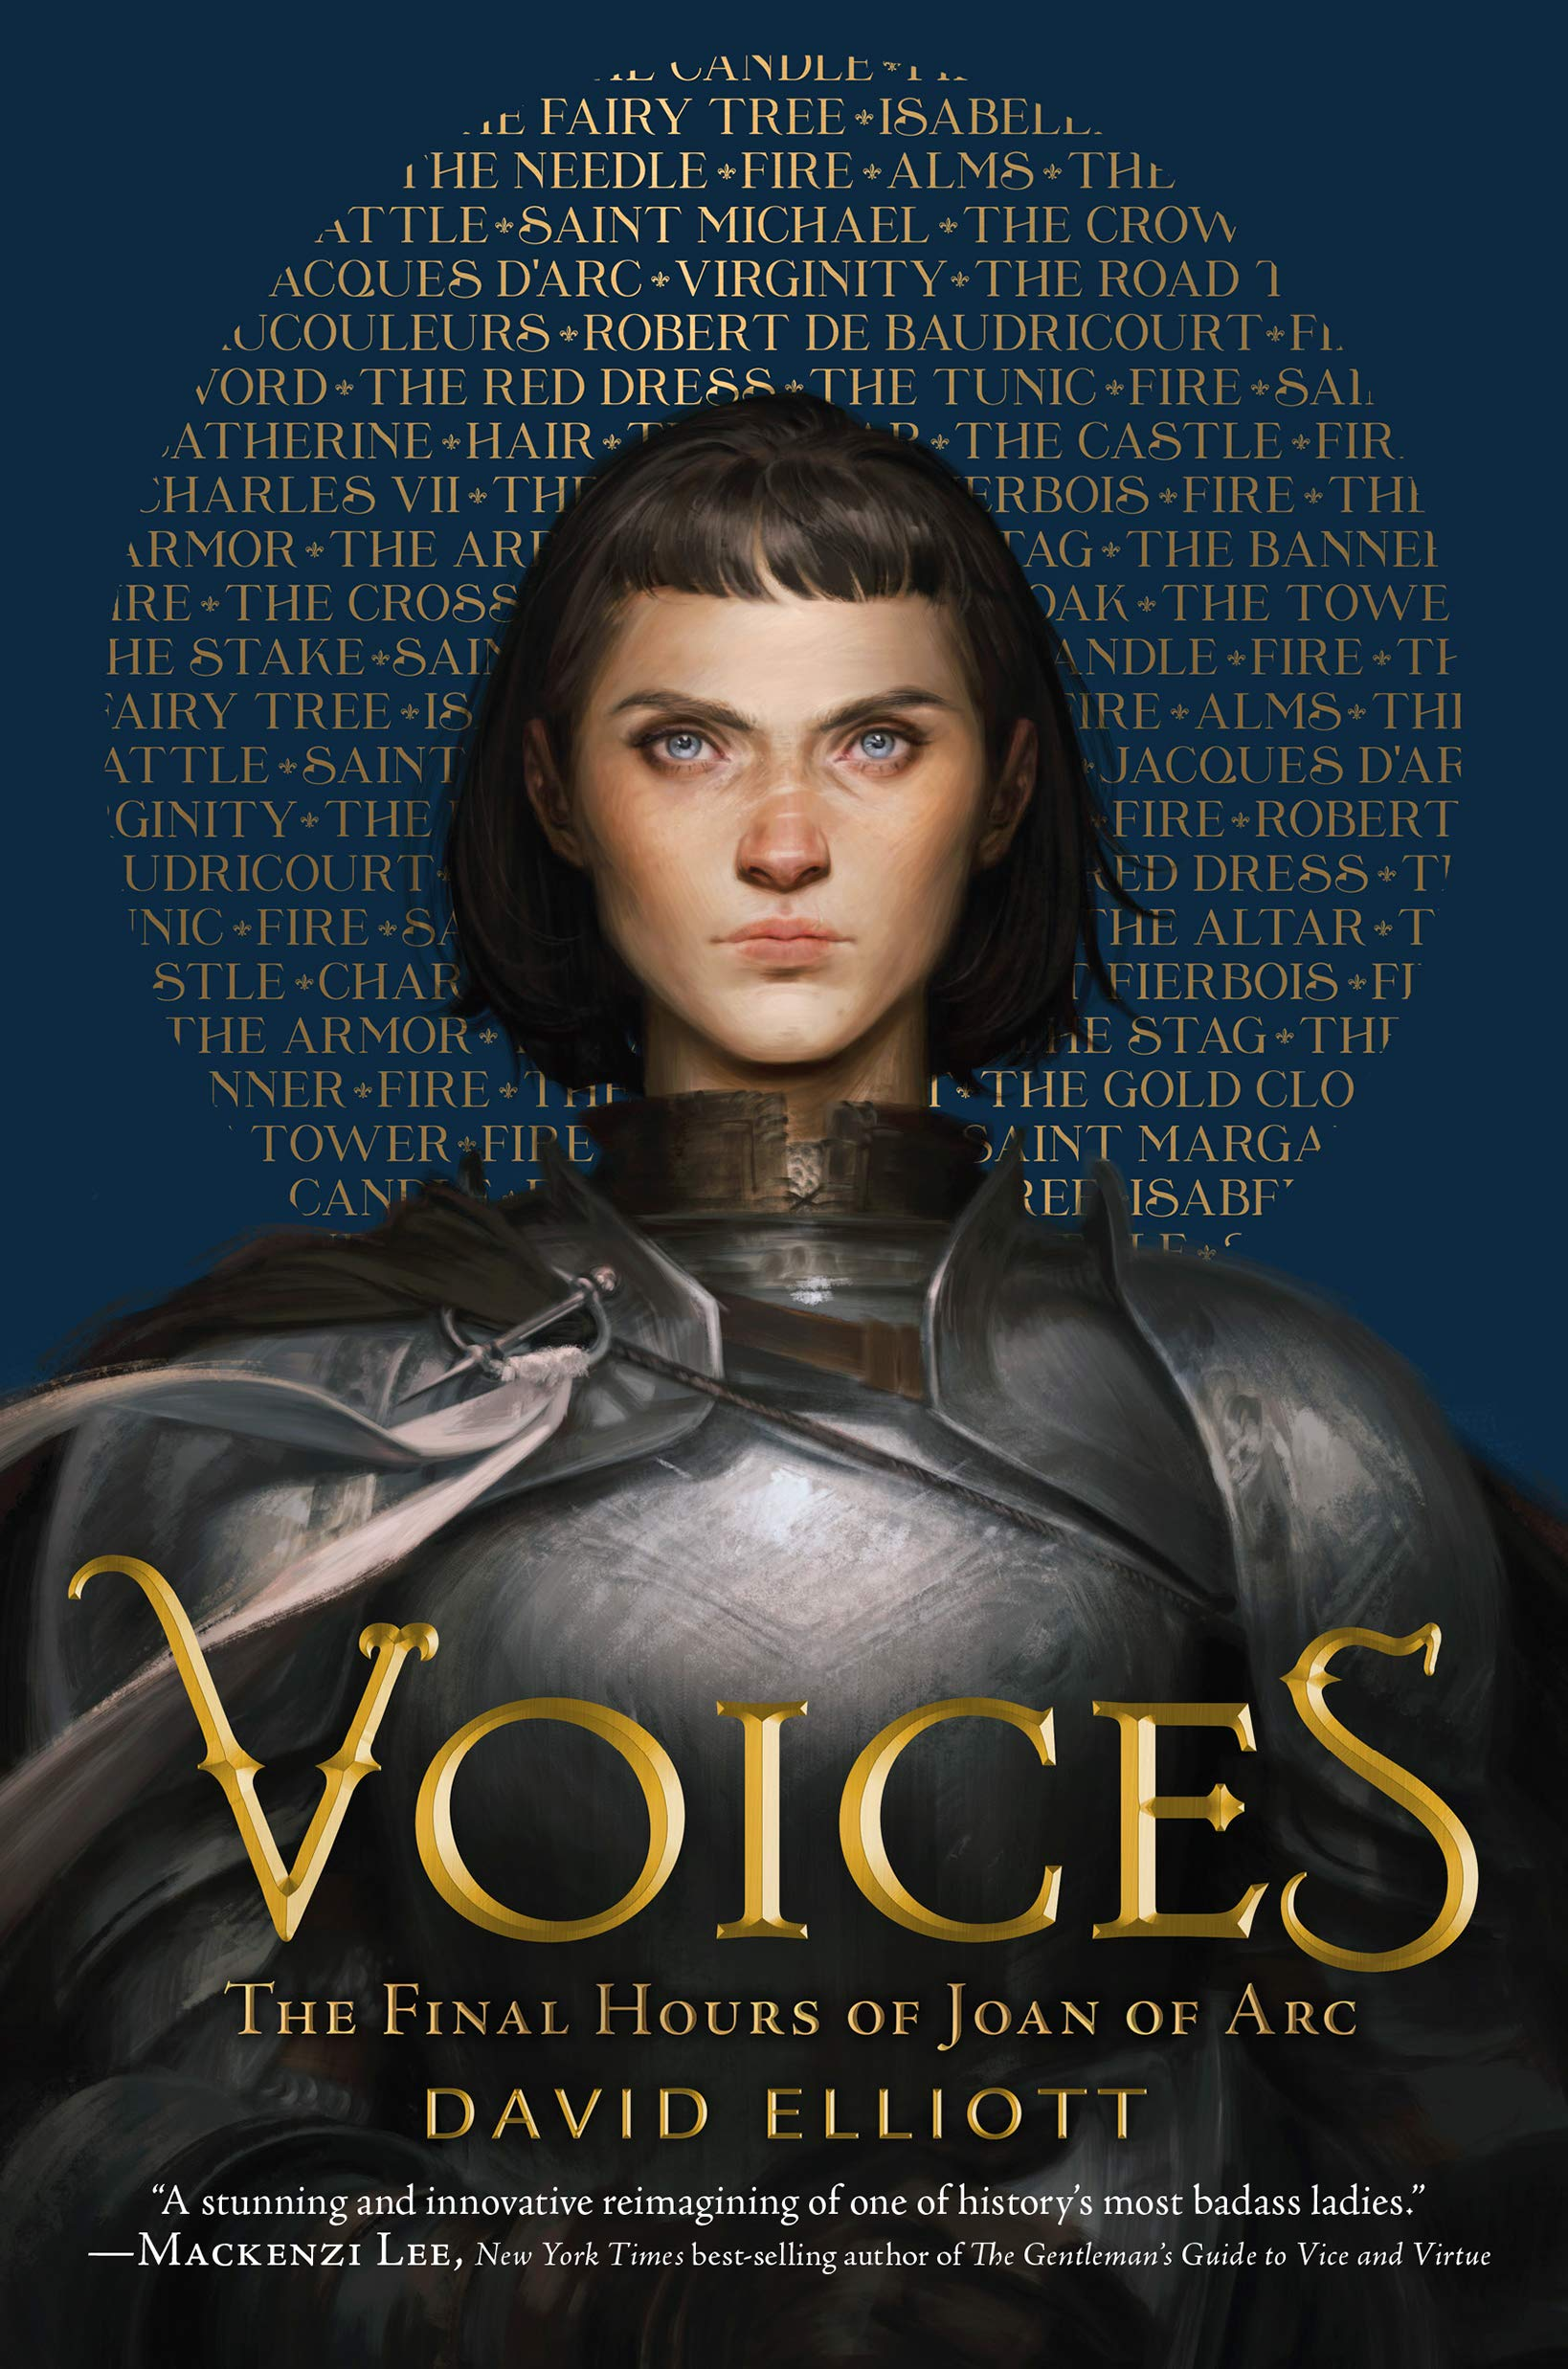 Amazon.com: Voices: The Final Hours of Joan of Arc (9781328987594 ...